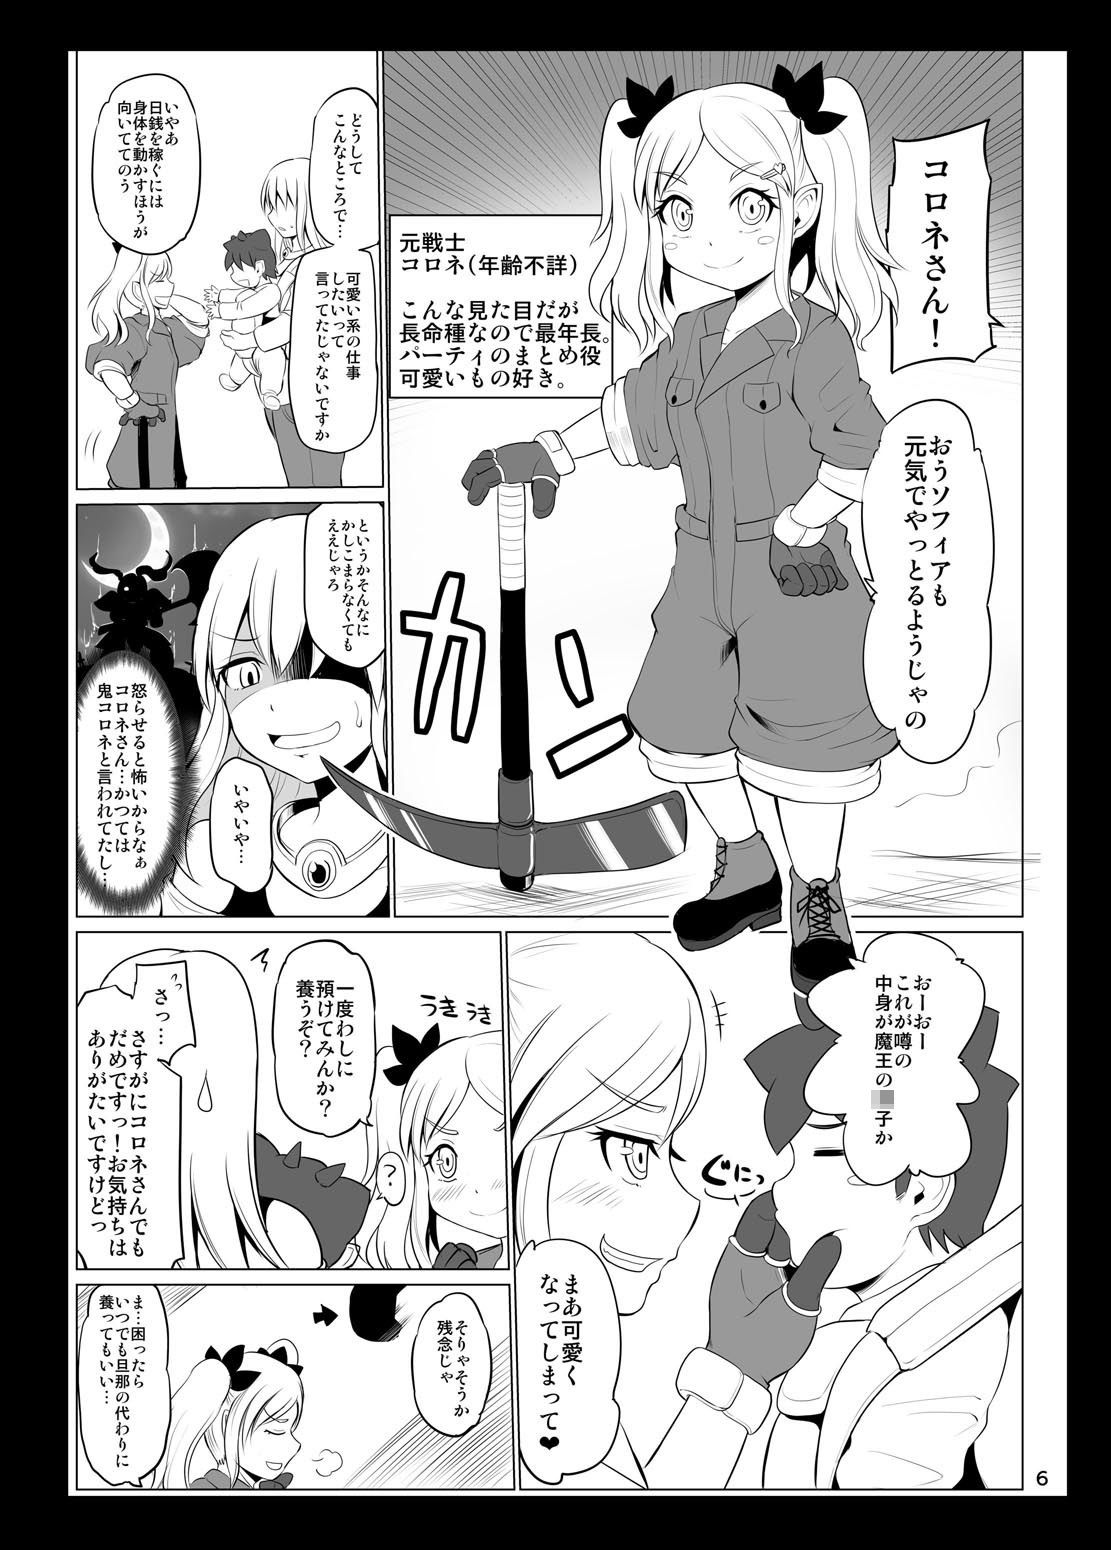 AVアニメなう [今すぐ読める同人サンプル] 「ママさん勇者と赤ちゃん魔王2」(ほしまきPro...